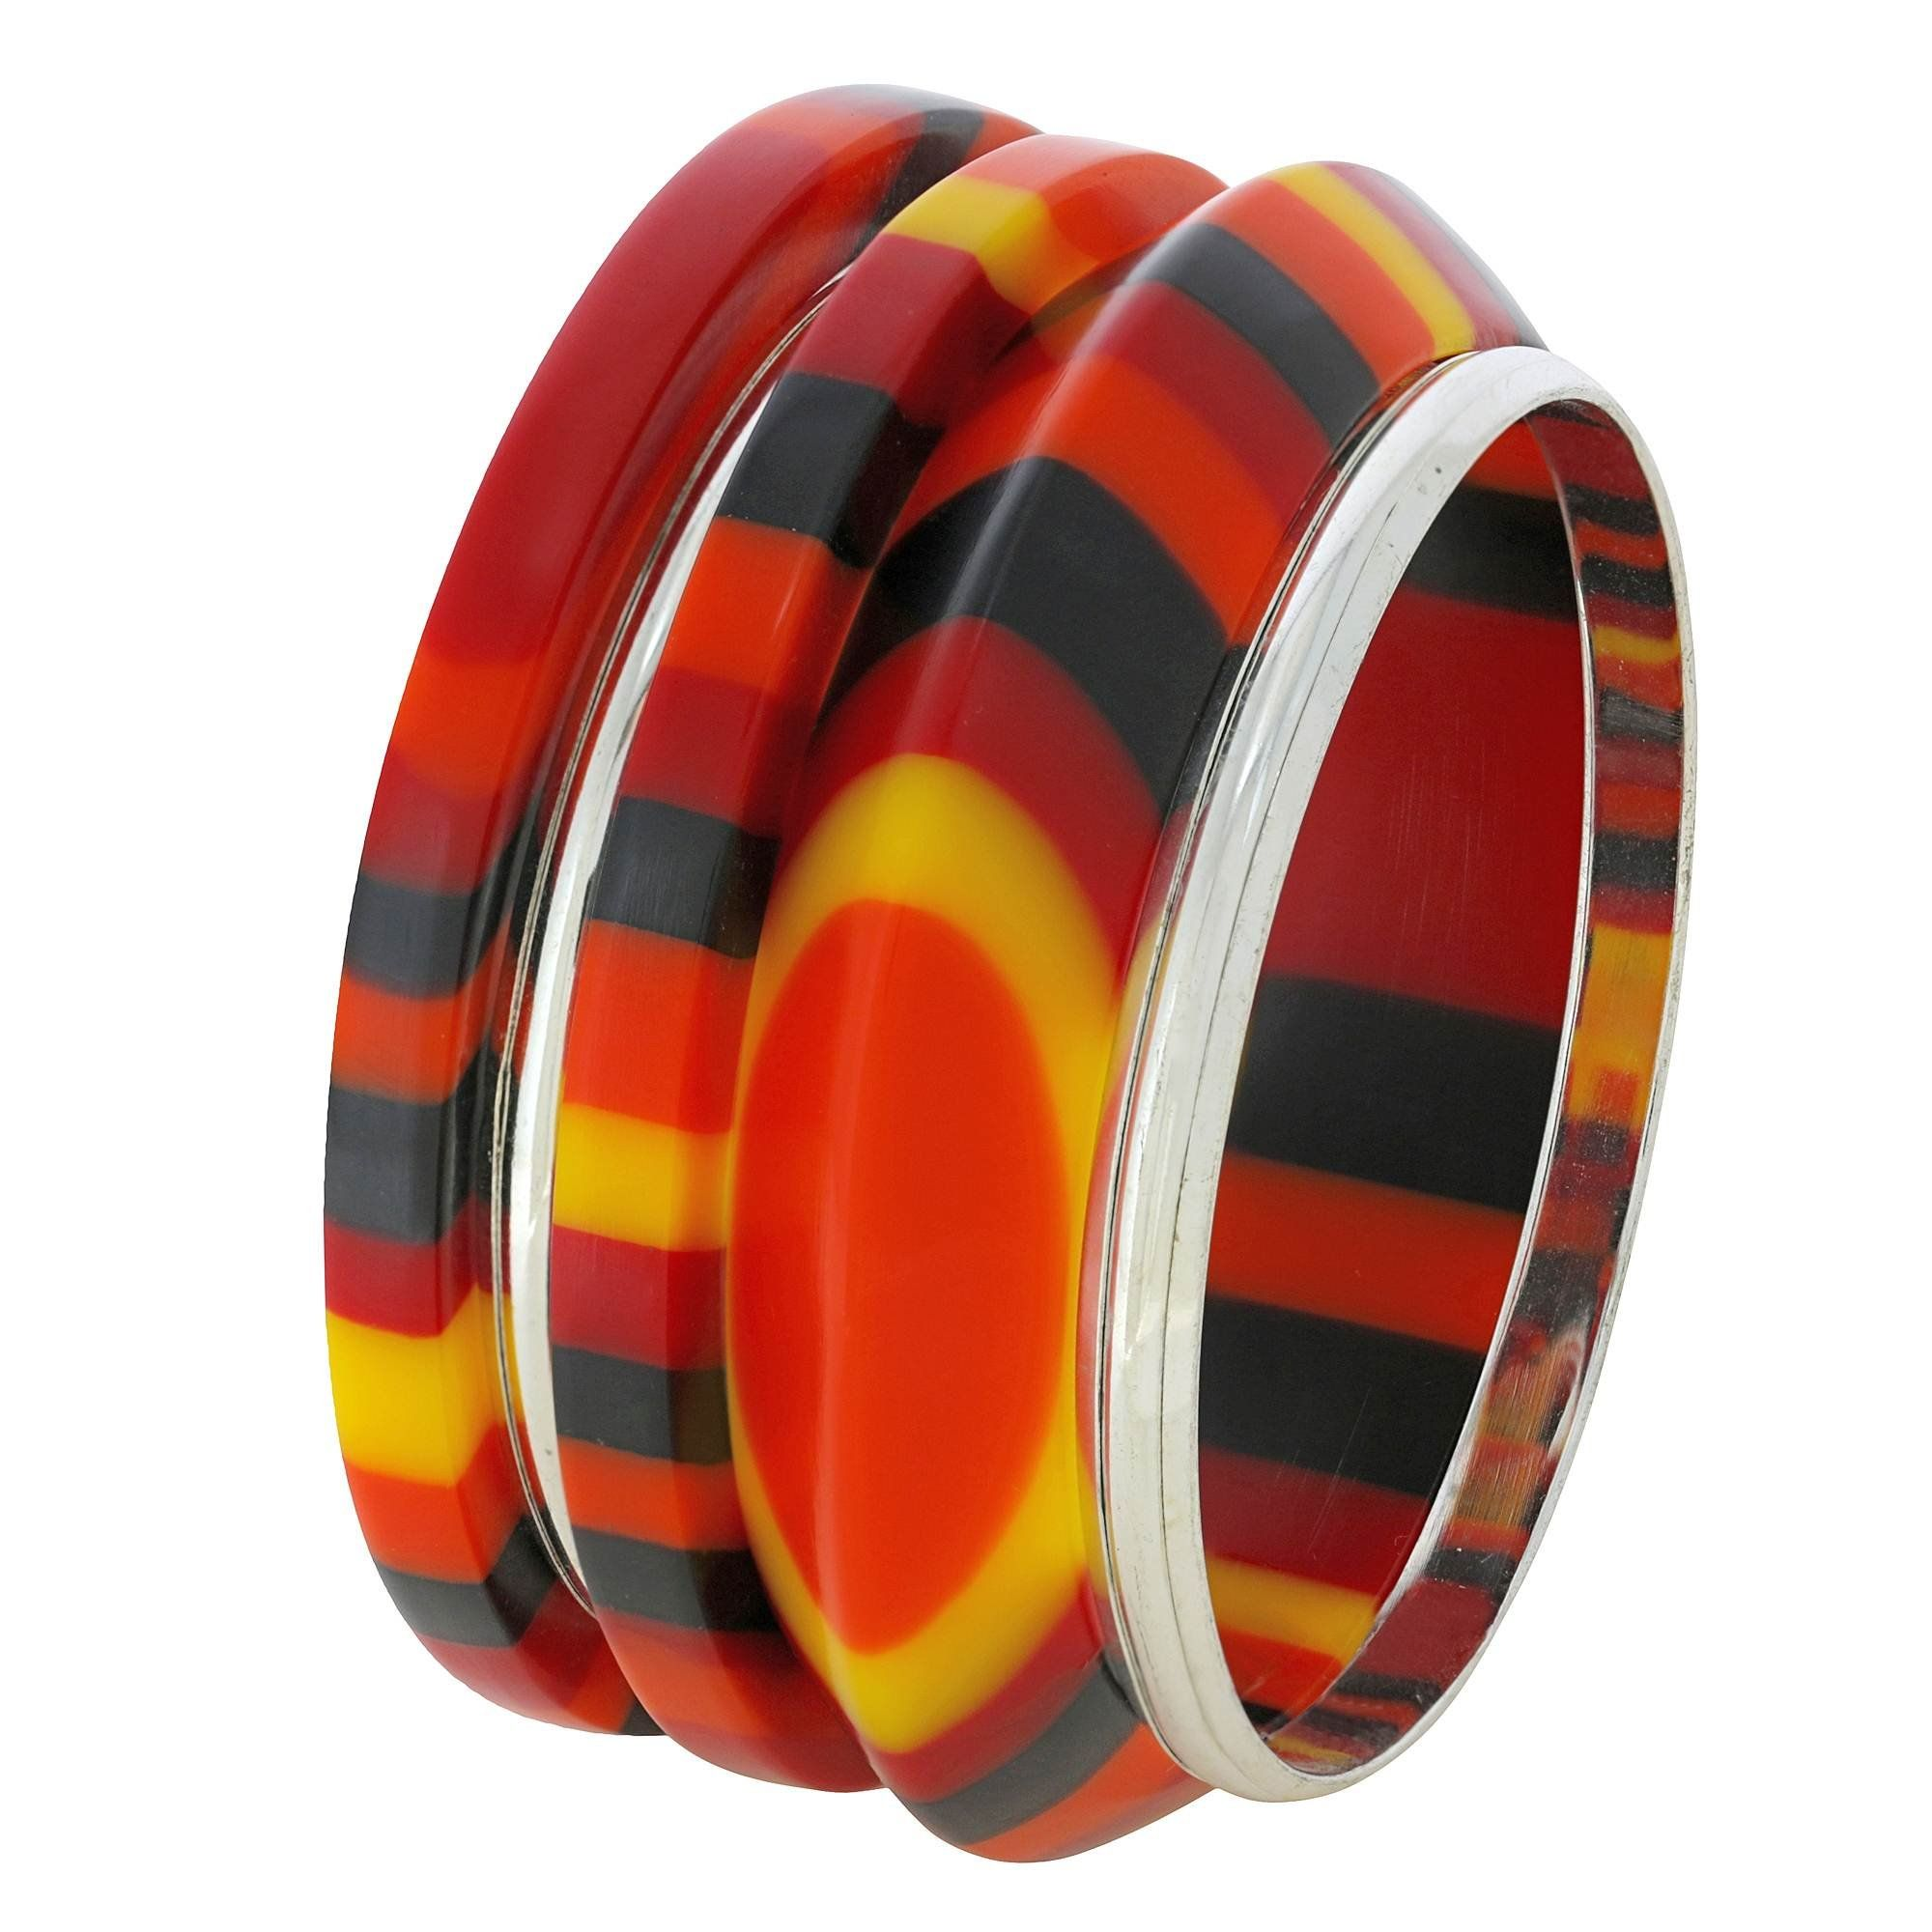 Buy Colorful Bangles Indian Fashion Jewelry Handmade Christmas Gift For Girlfriend Online At Low